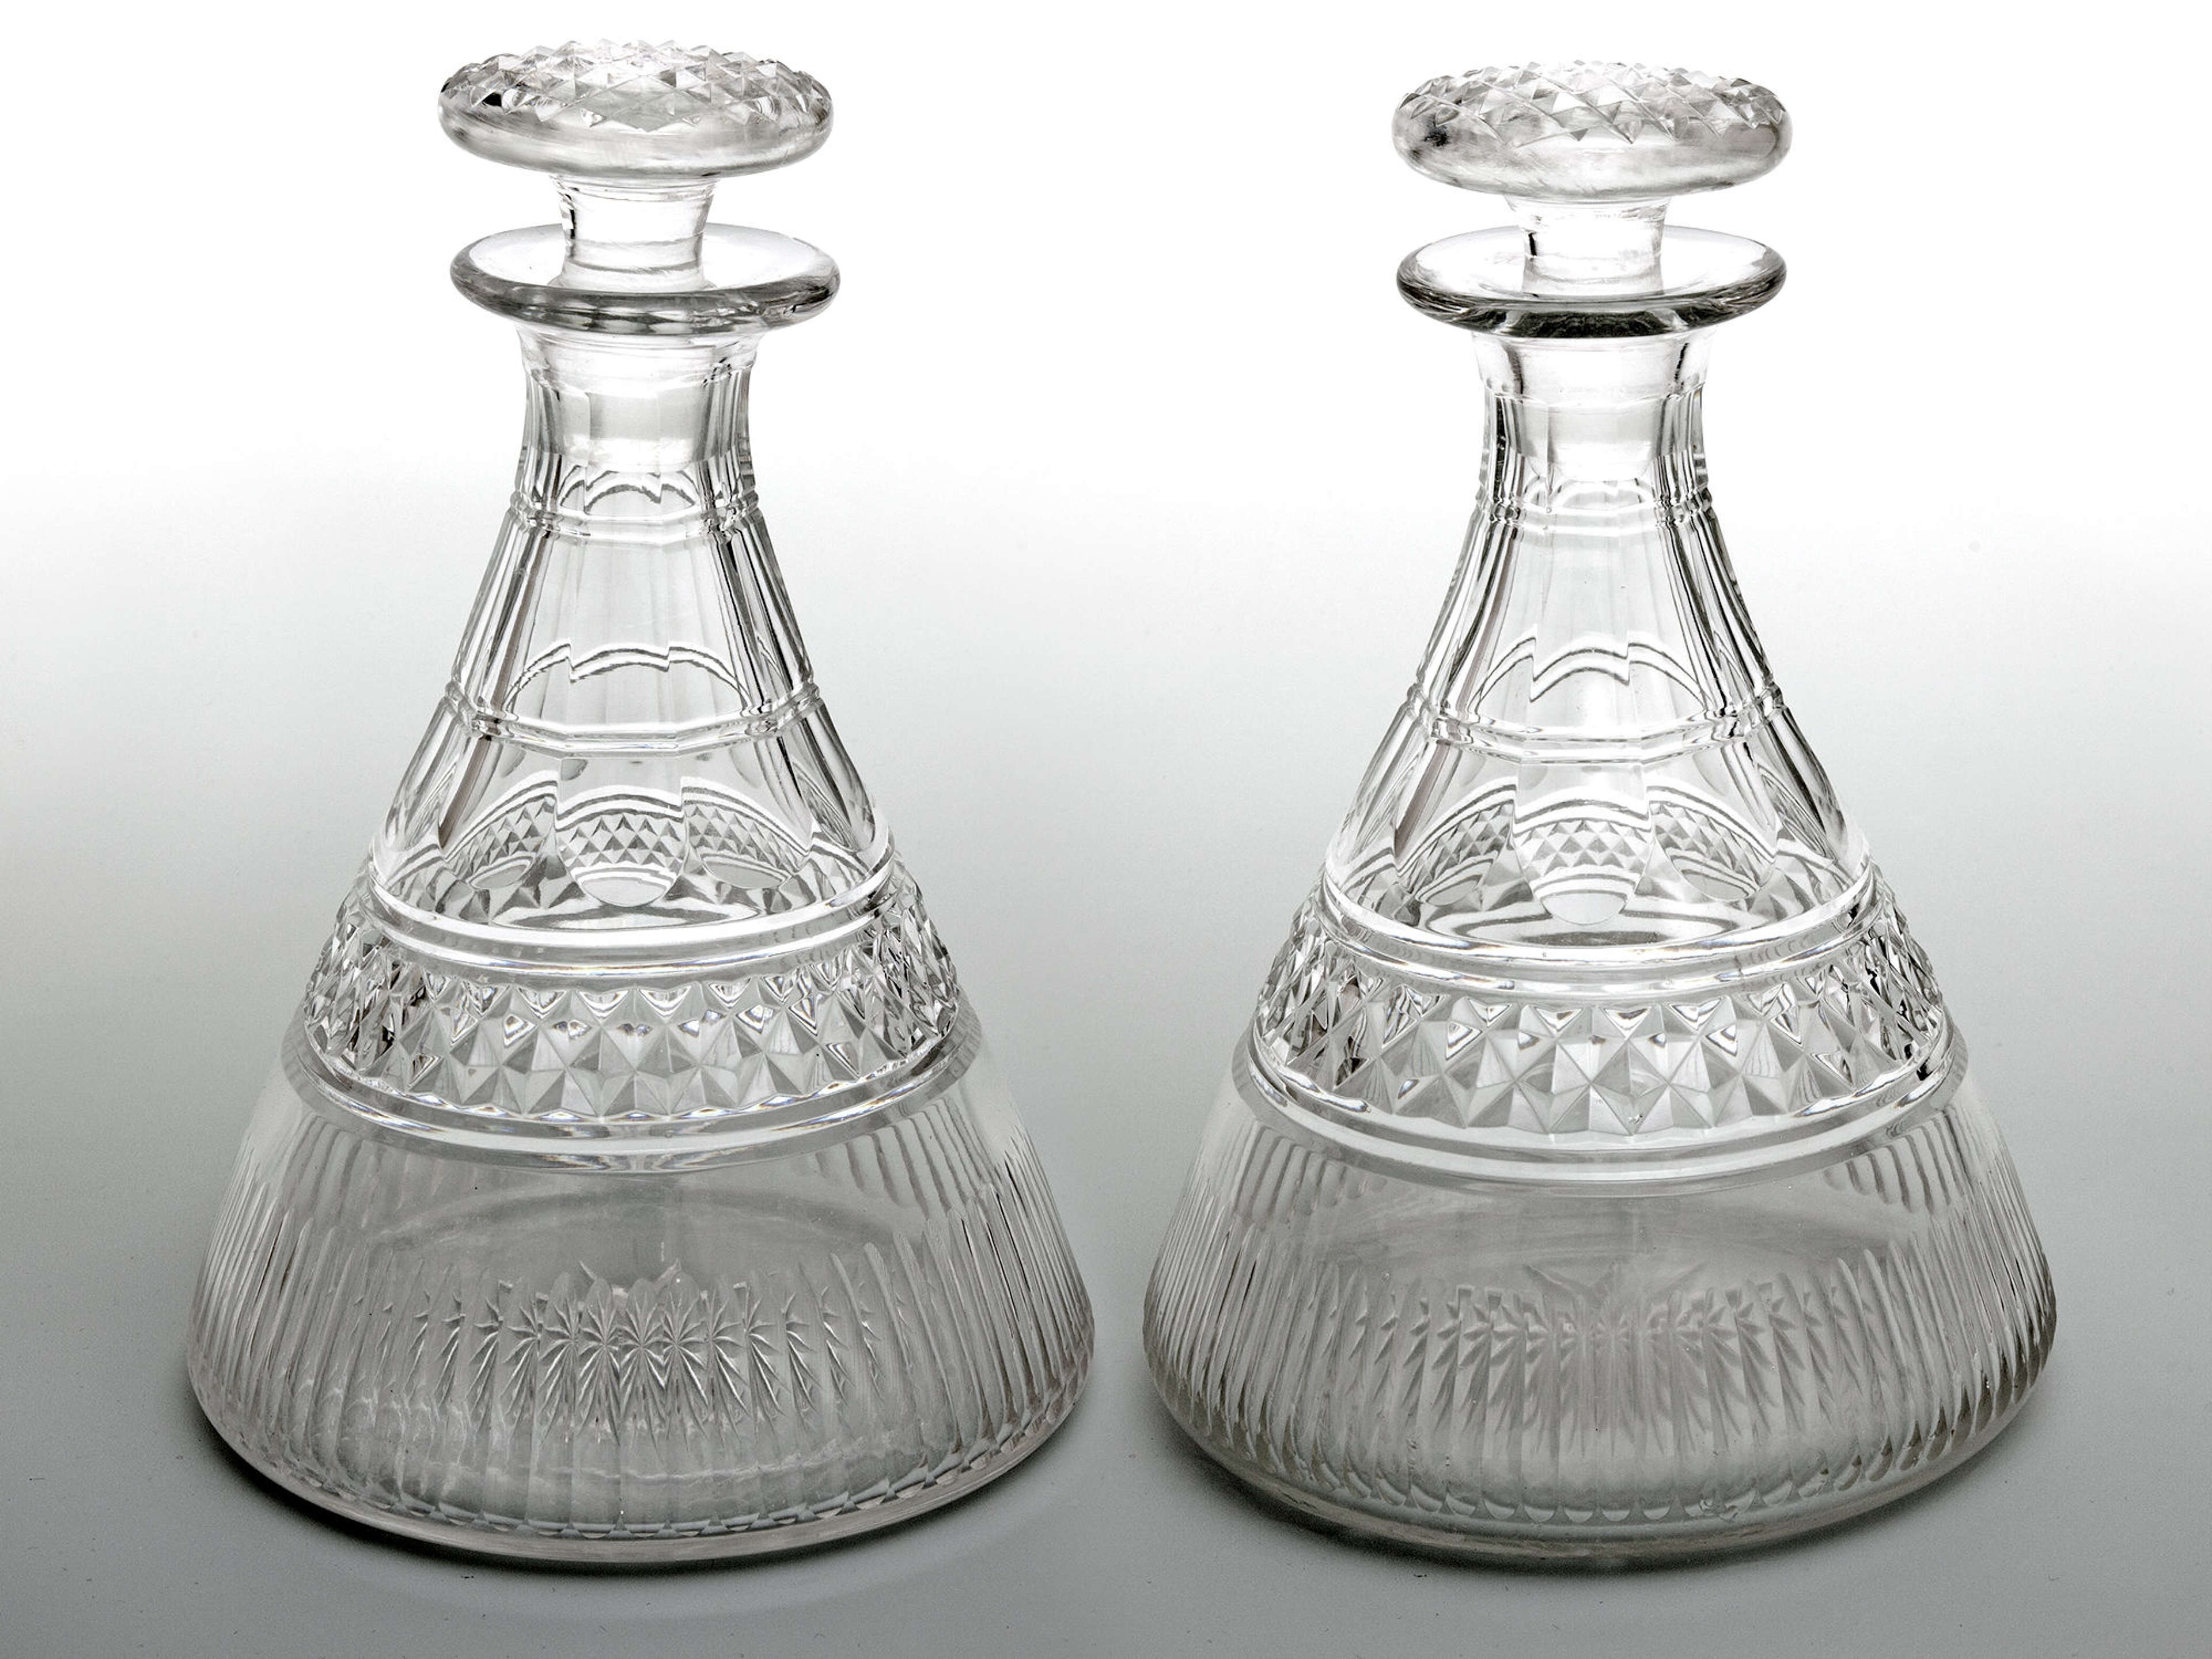 Pair of Antique Cut Glass Georgian Style Ships Decanters